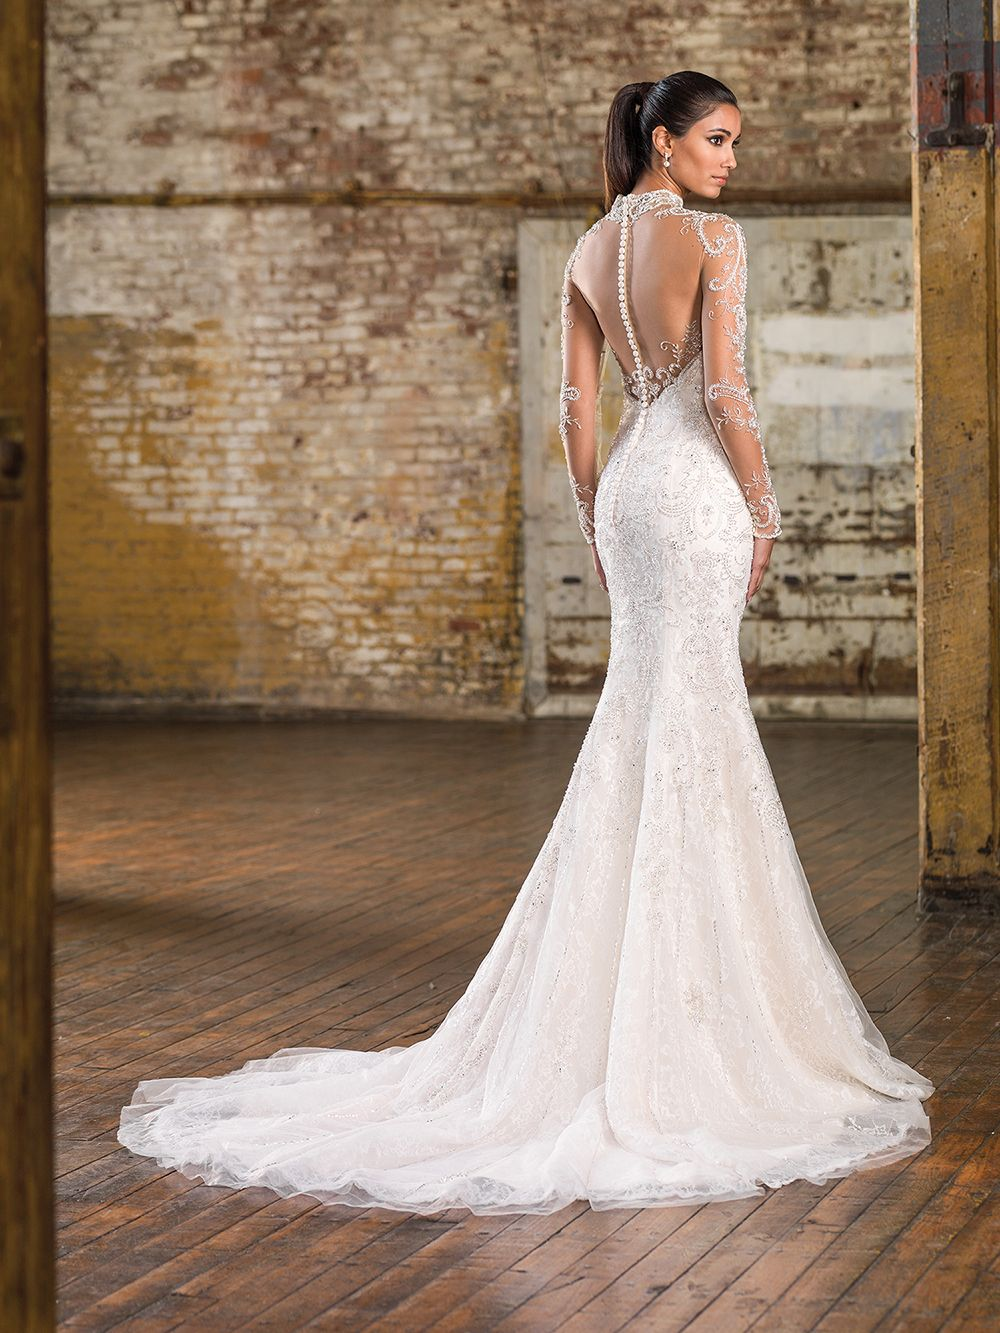 Lace fit and flare wedding dress with sleeves  Beaded illusion tulle Mandarin neckline illusion back neckline and